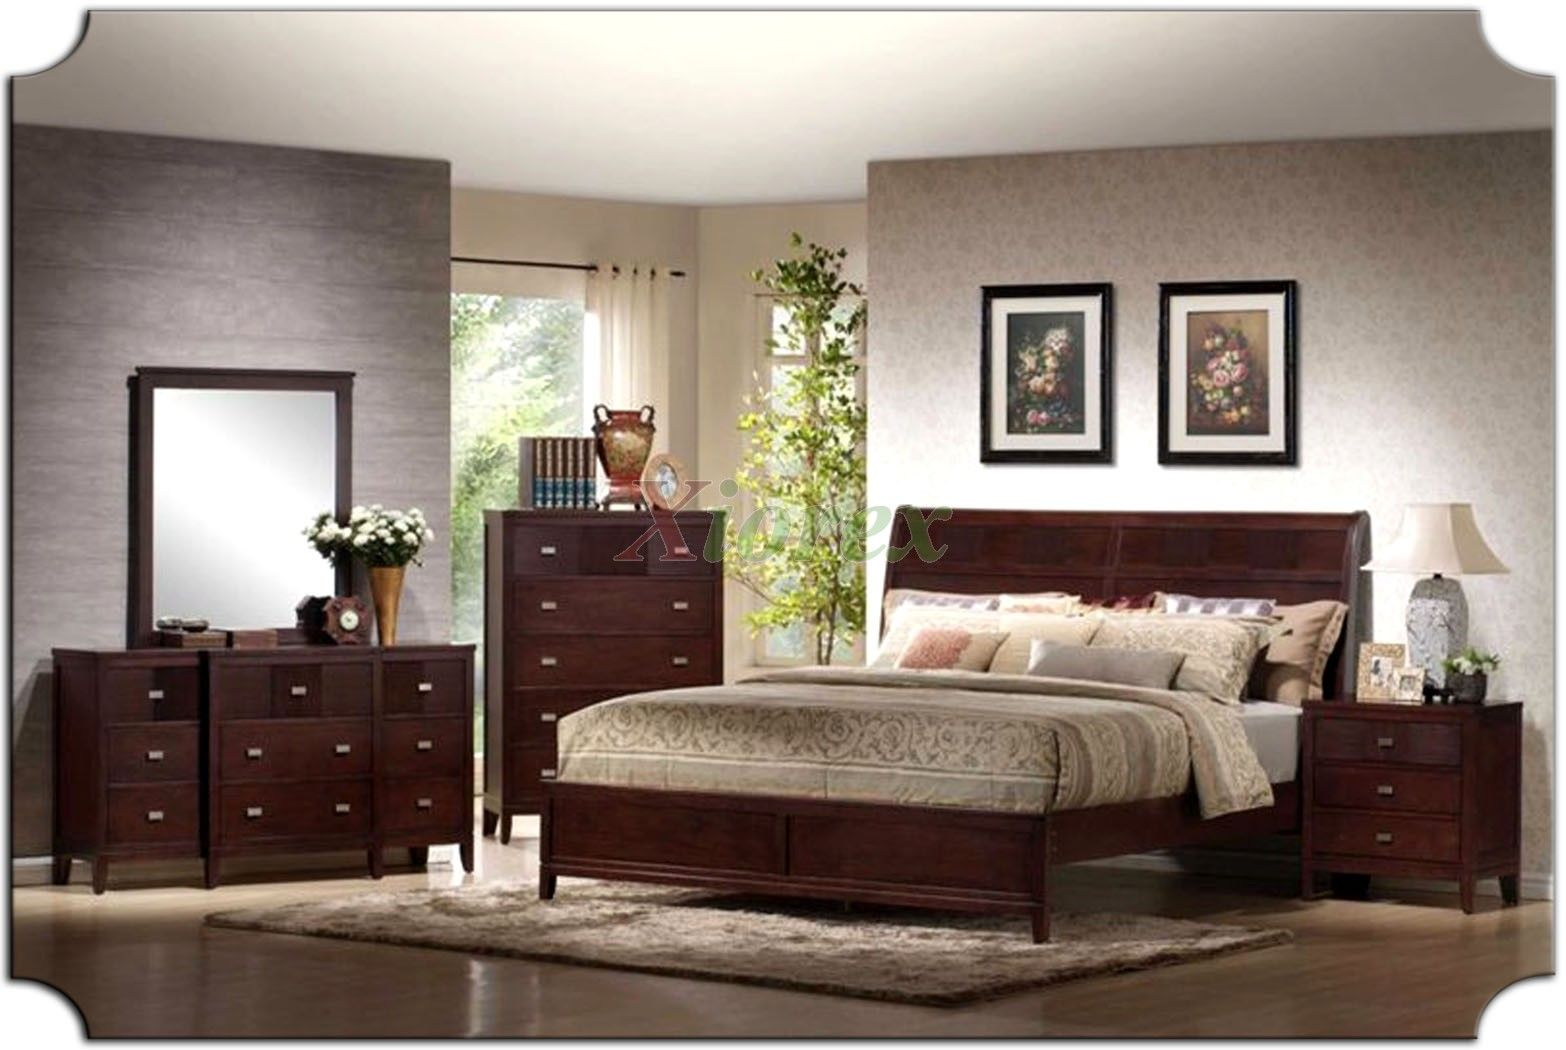 Furniture Design For Bedroom In India Amazing Bedroom Furniture Sets Online India  Design Ideas 20172018 Decorating Inspiration